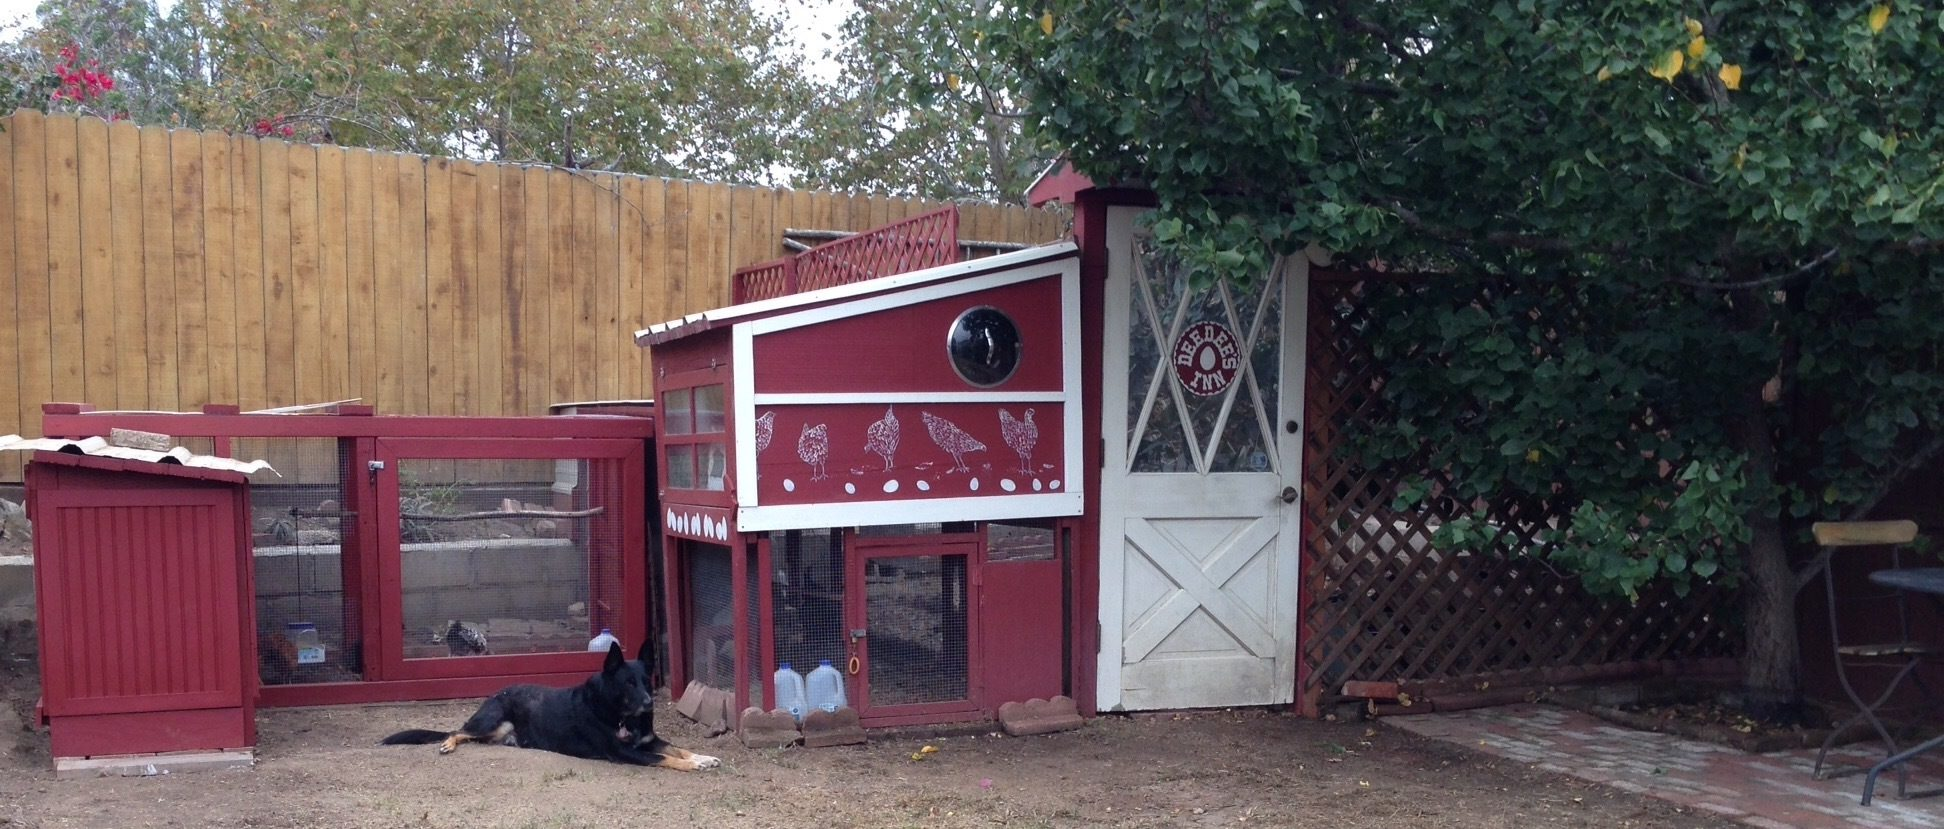 This is Deedee's Inn in Santa Barbara! Currently four hens age 16-17 months) plus four pullets and one accidental cockerel (age 2.5 months) live here (in Oct 2015). The big hens have a 4x4 coop and the young ones have a 2x4 coop. They all share three adjoining predator-proof runs that make up 80 sq ft, and share a fenced-in chicken yard with an avocado tree in it. I started building the Inn in the summer of 2014, and it has expanded bit by bit. It is built with almost all re-used materials, found through Craigslist. It has been such a fun ongoing project!